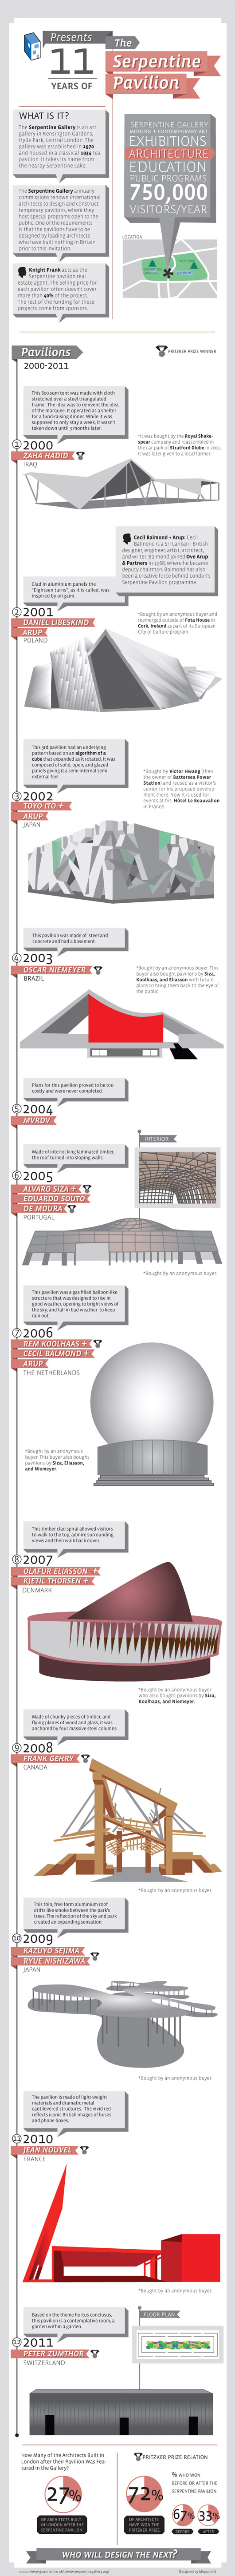 11 Years of the Serpentine Gallery Pavilion